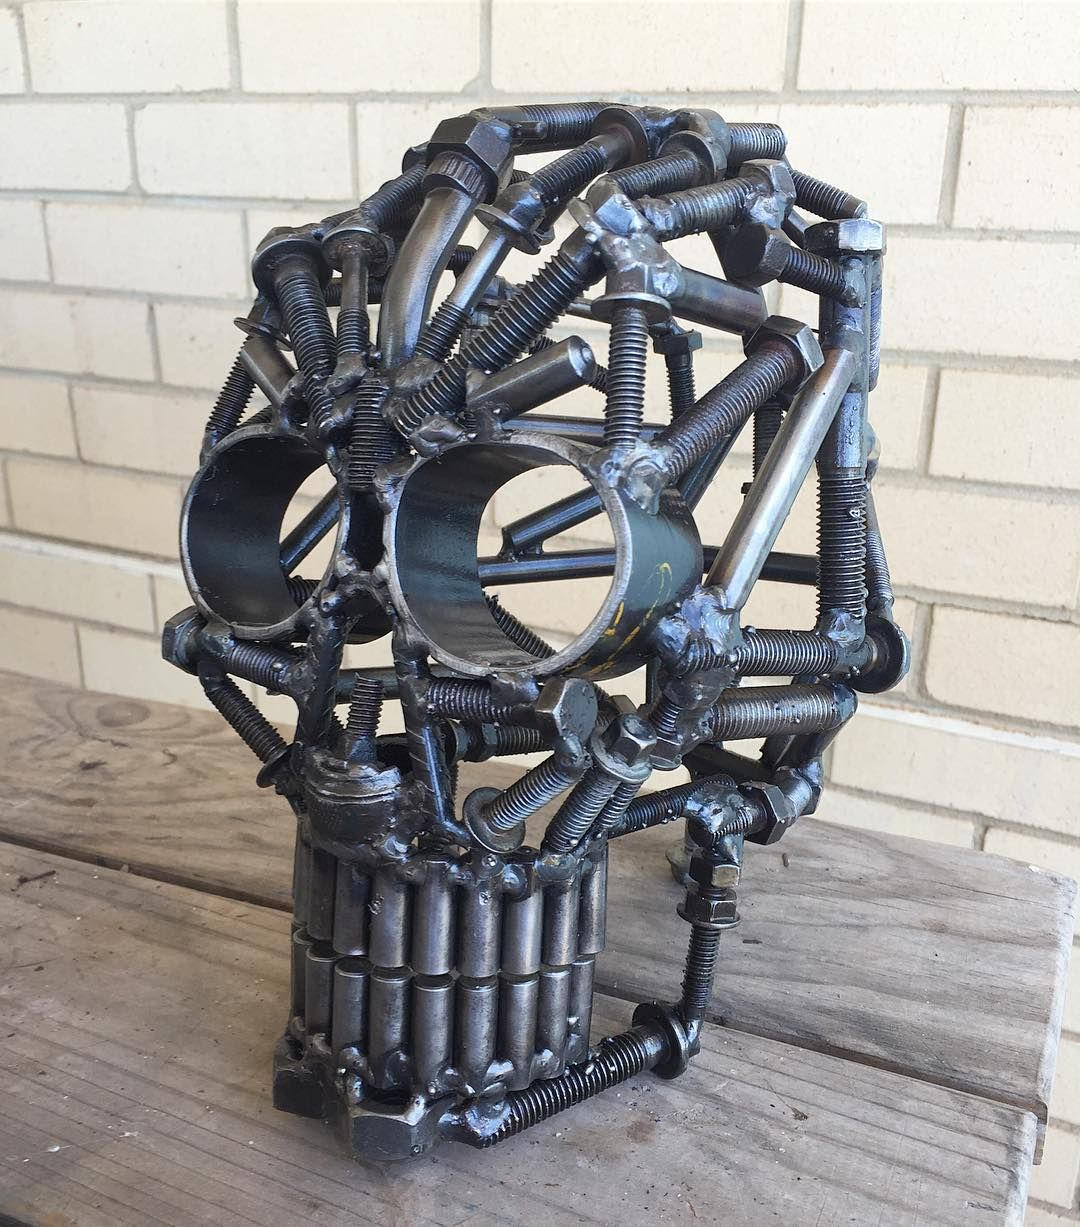 457256168402905927 on Art Recycled Car Parts Furniture